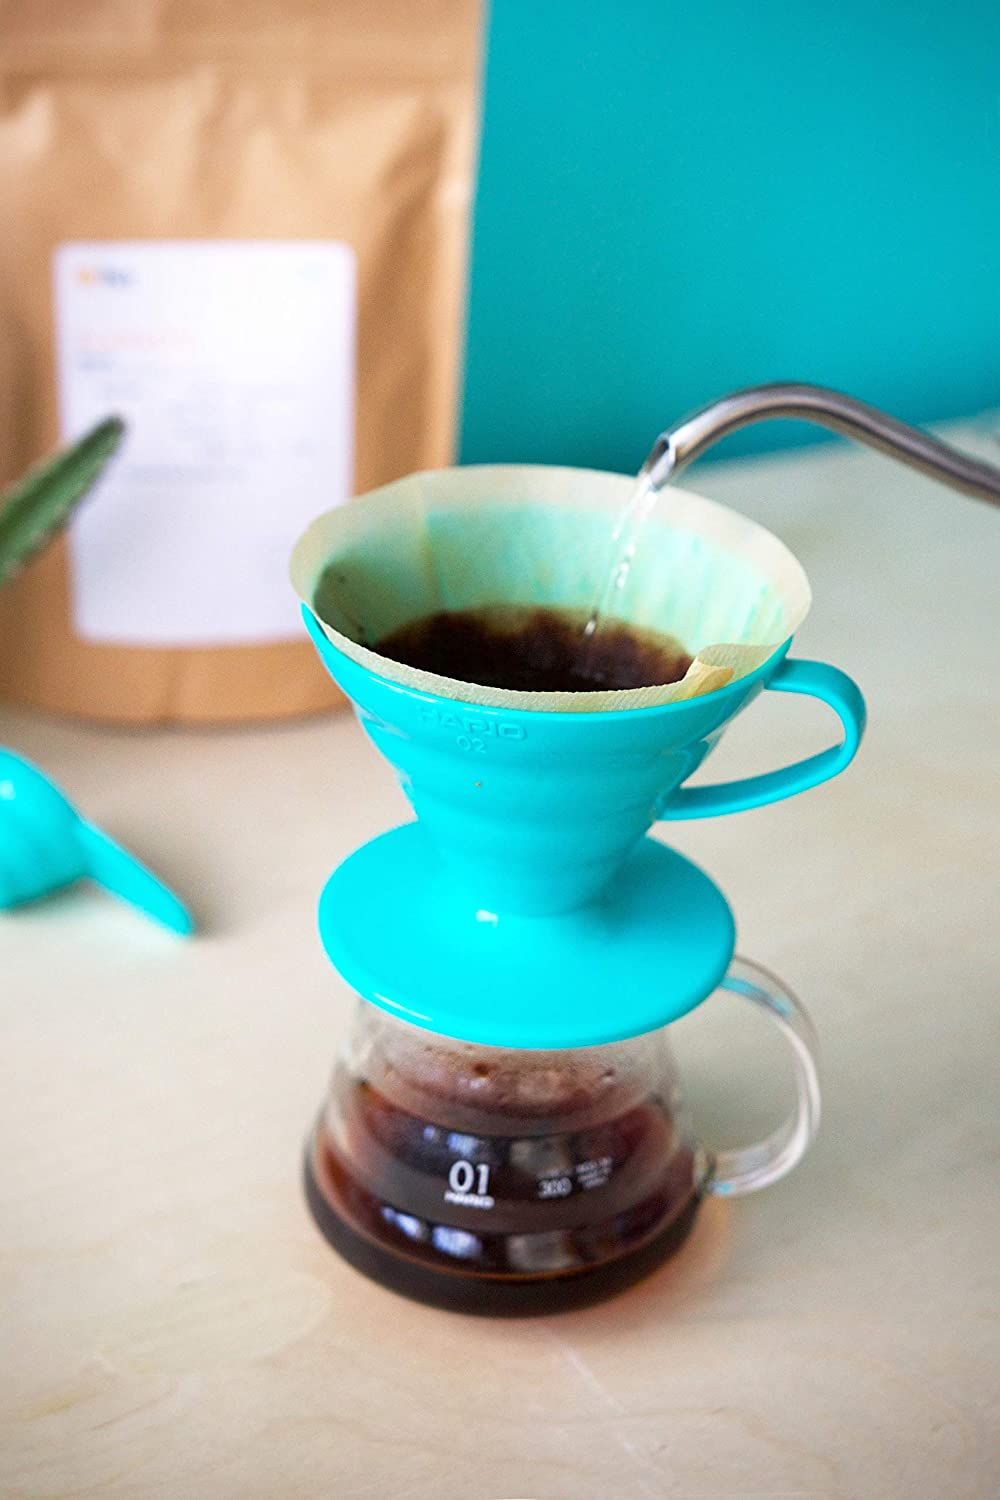 Hario V60 Teal Coffee Dripper Kit Plastic Size 02 40 Paper Filter Vcf 100mk Unbleached Papers Measuring Scoop Kitchen Home